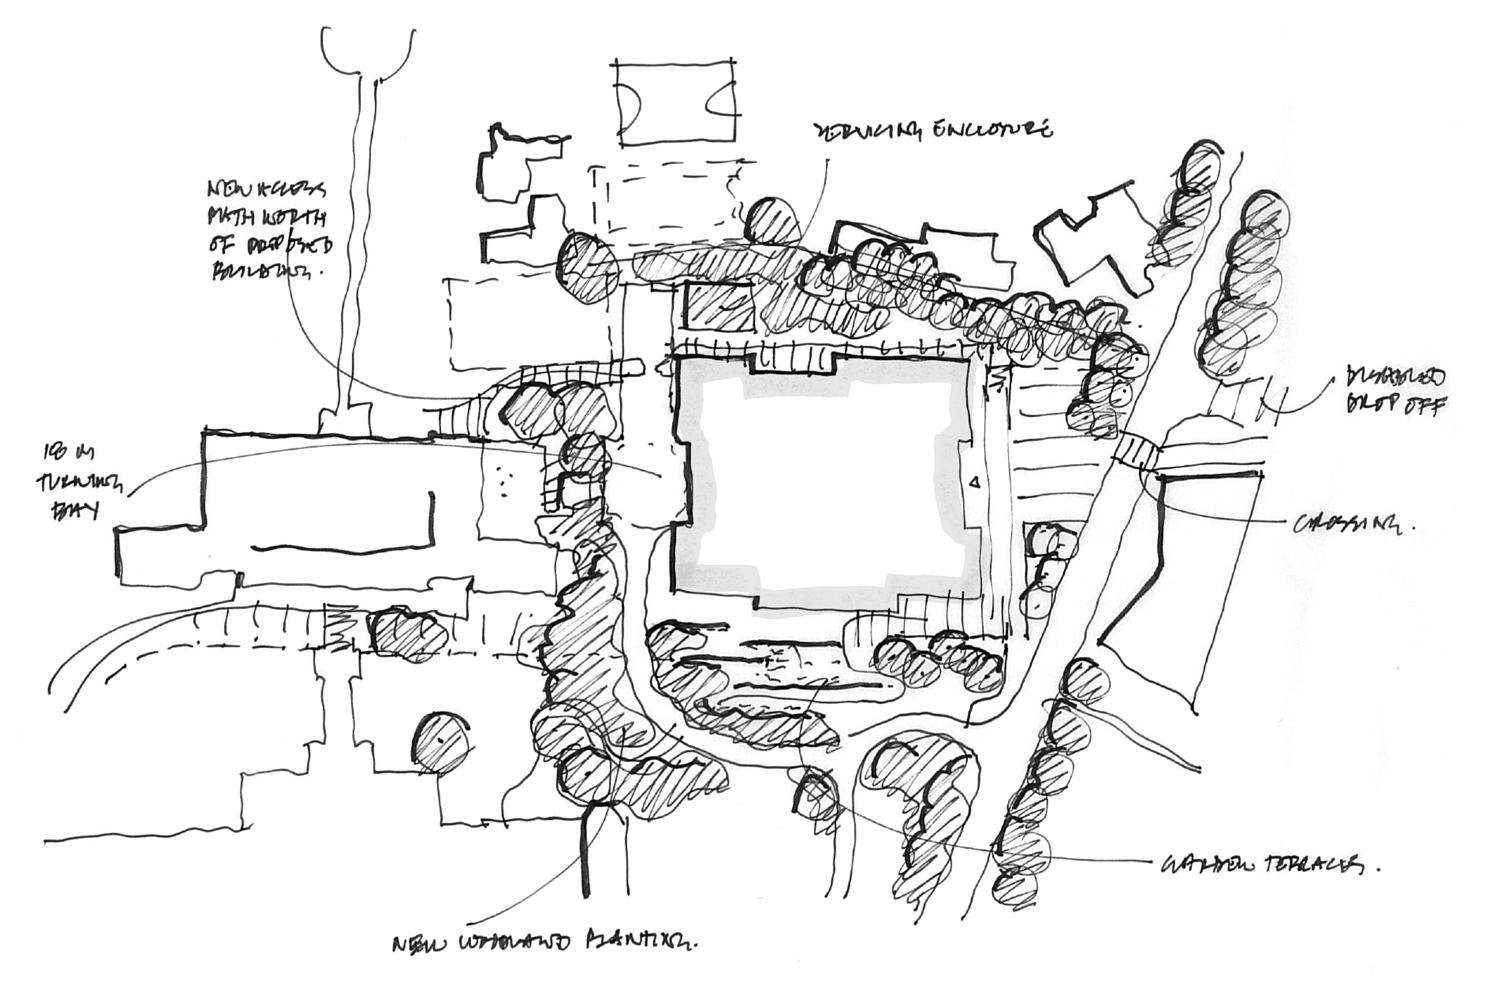 Sketch Plan Land Use Consultants}